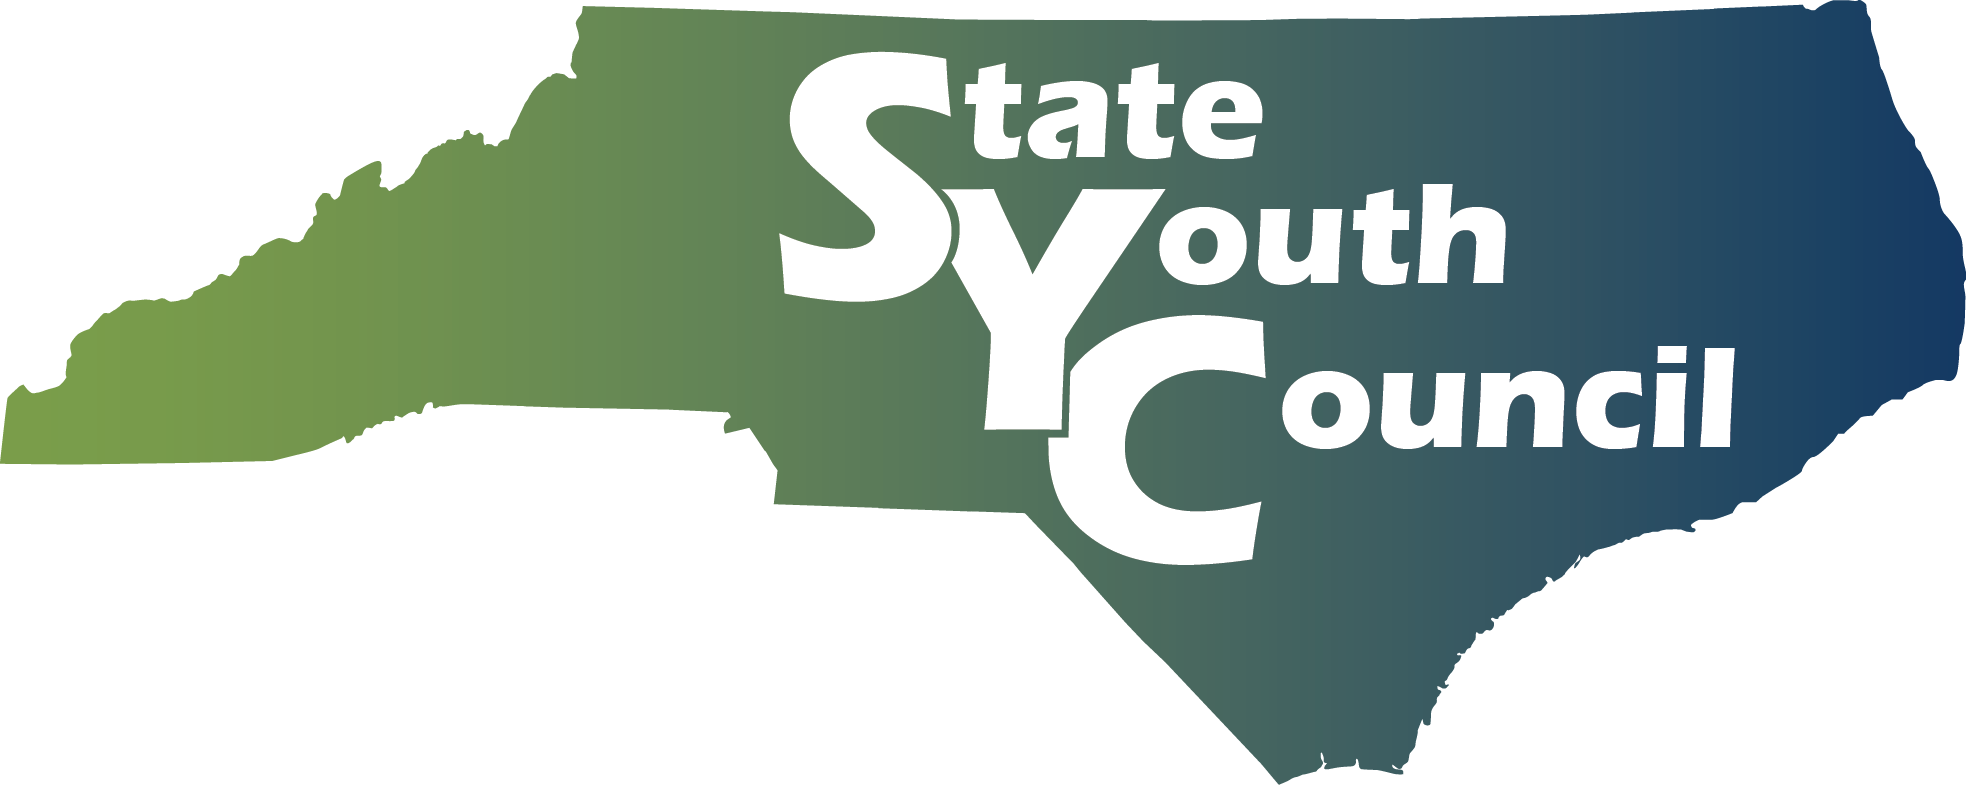 State Youth Council Logo